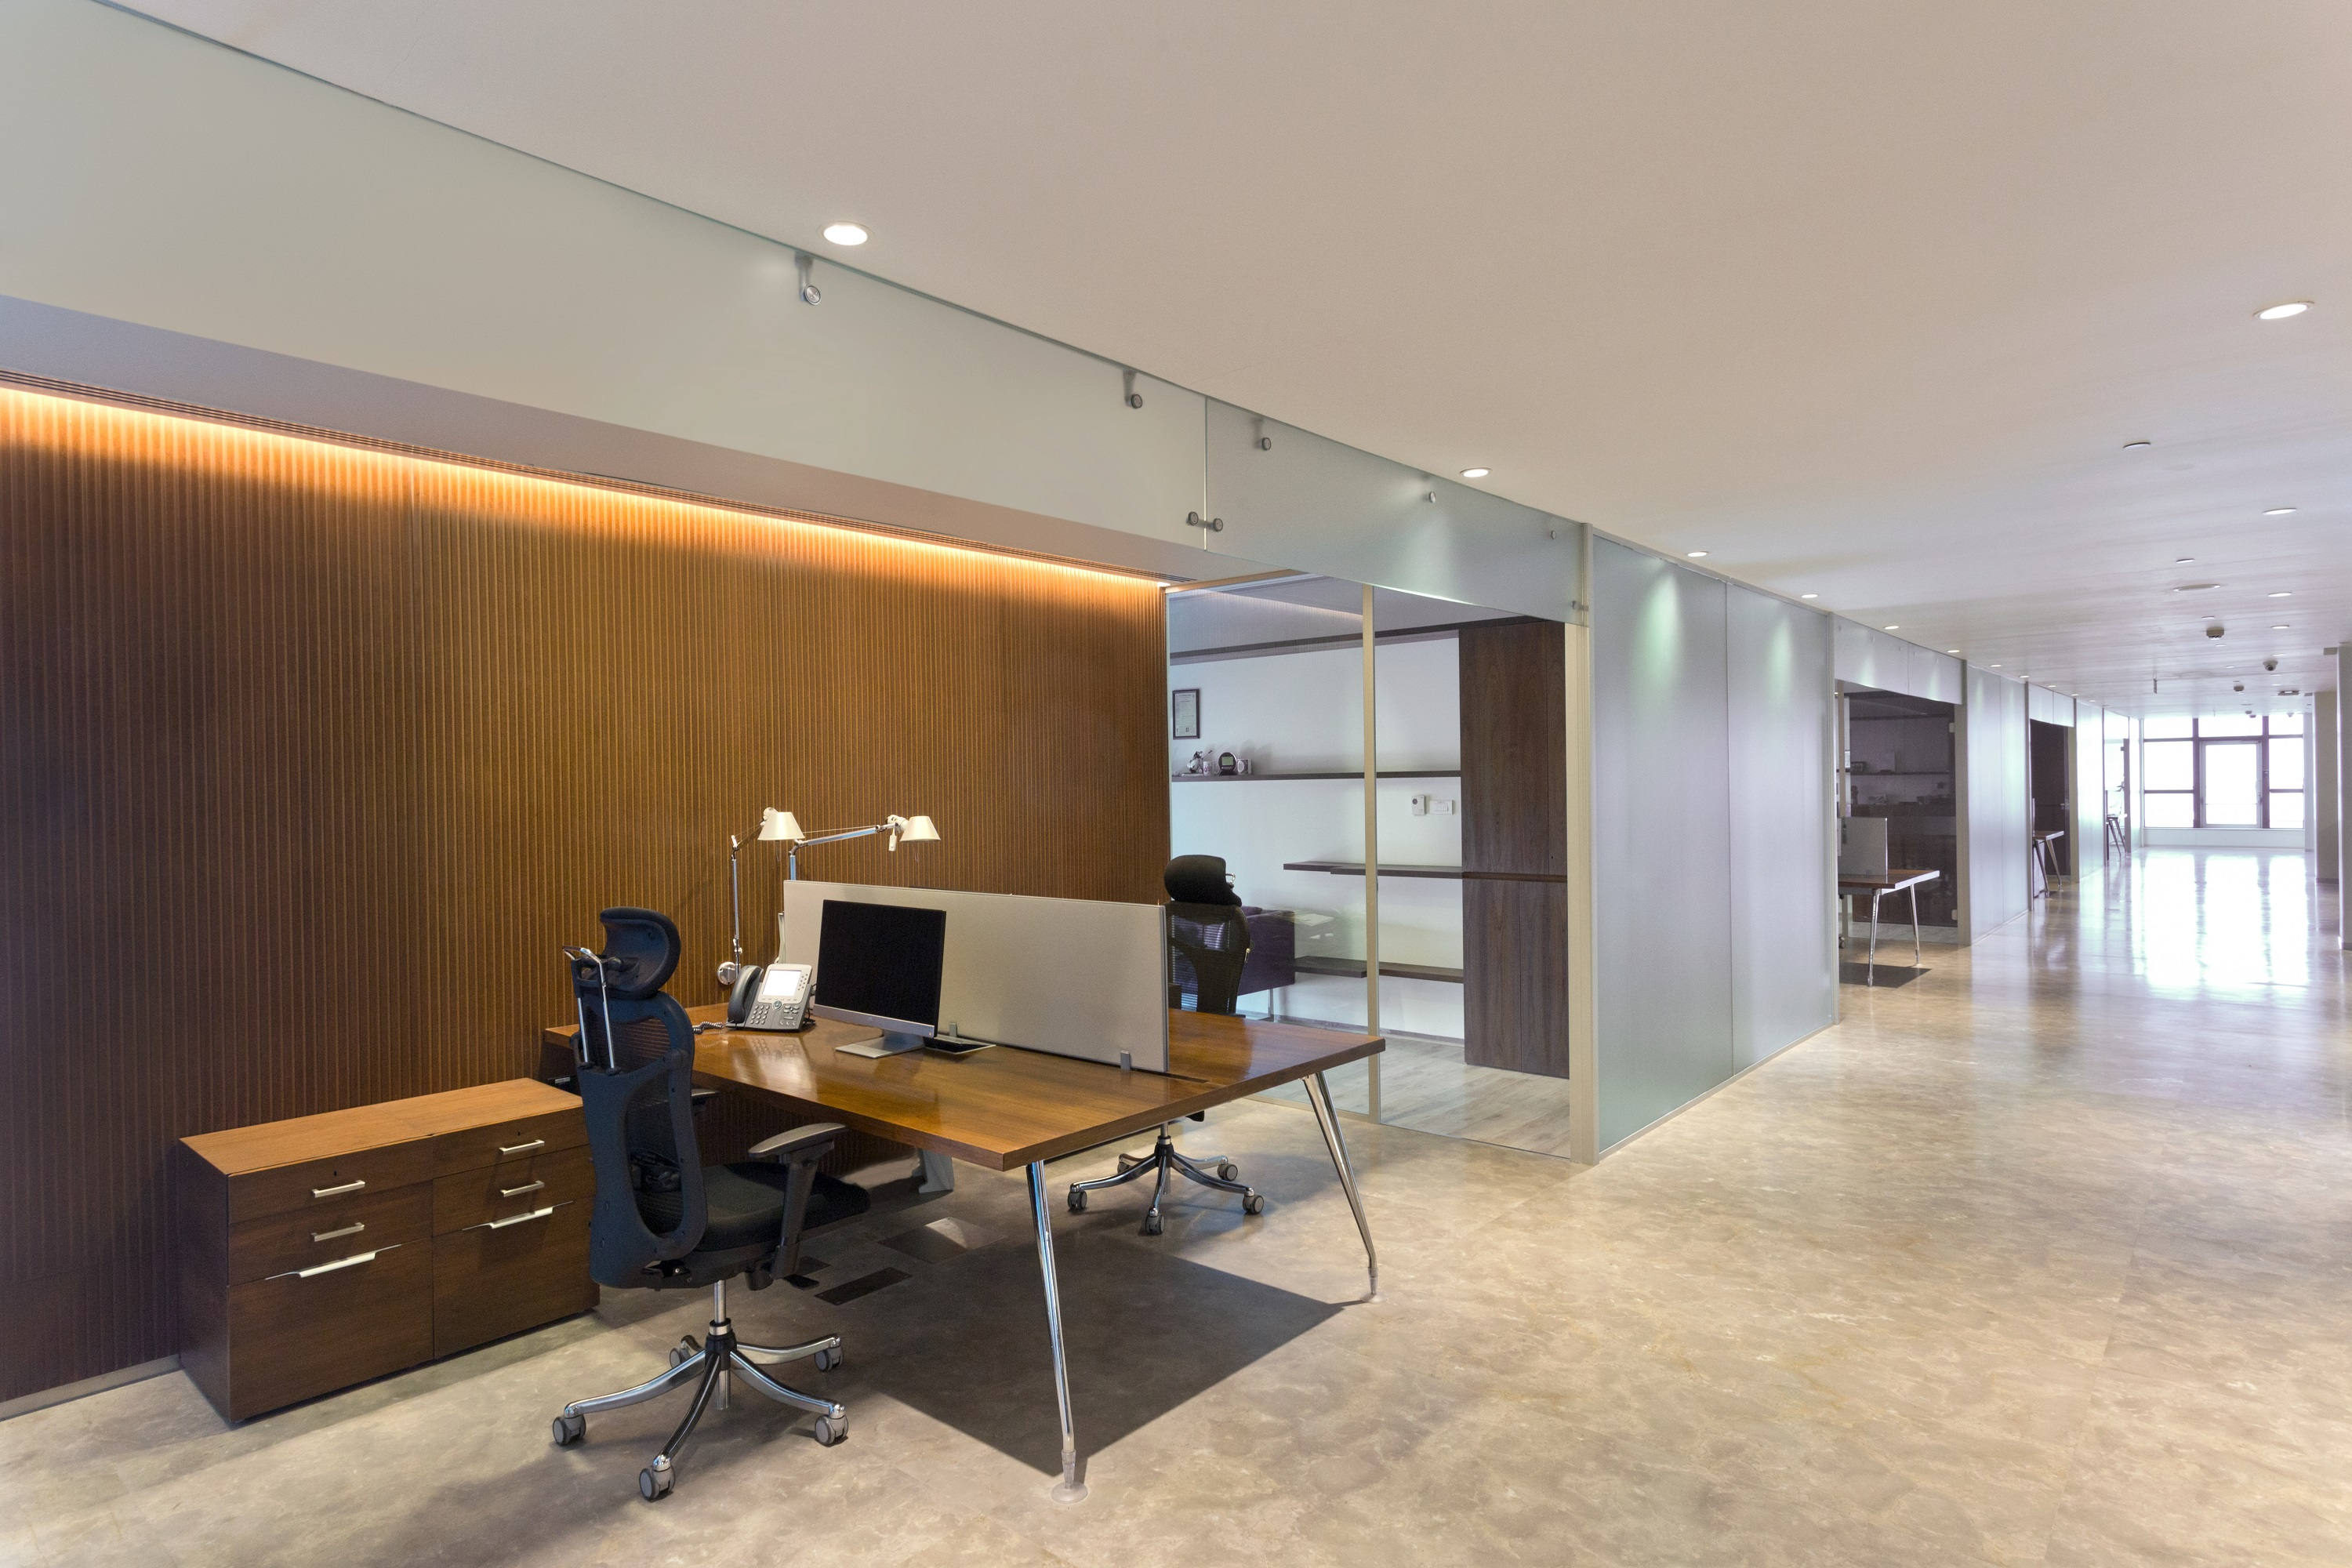 Office workspace design